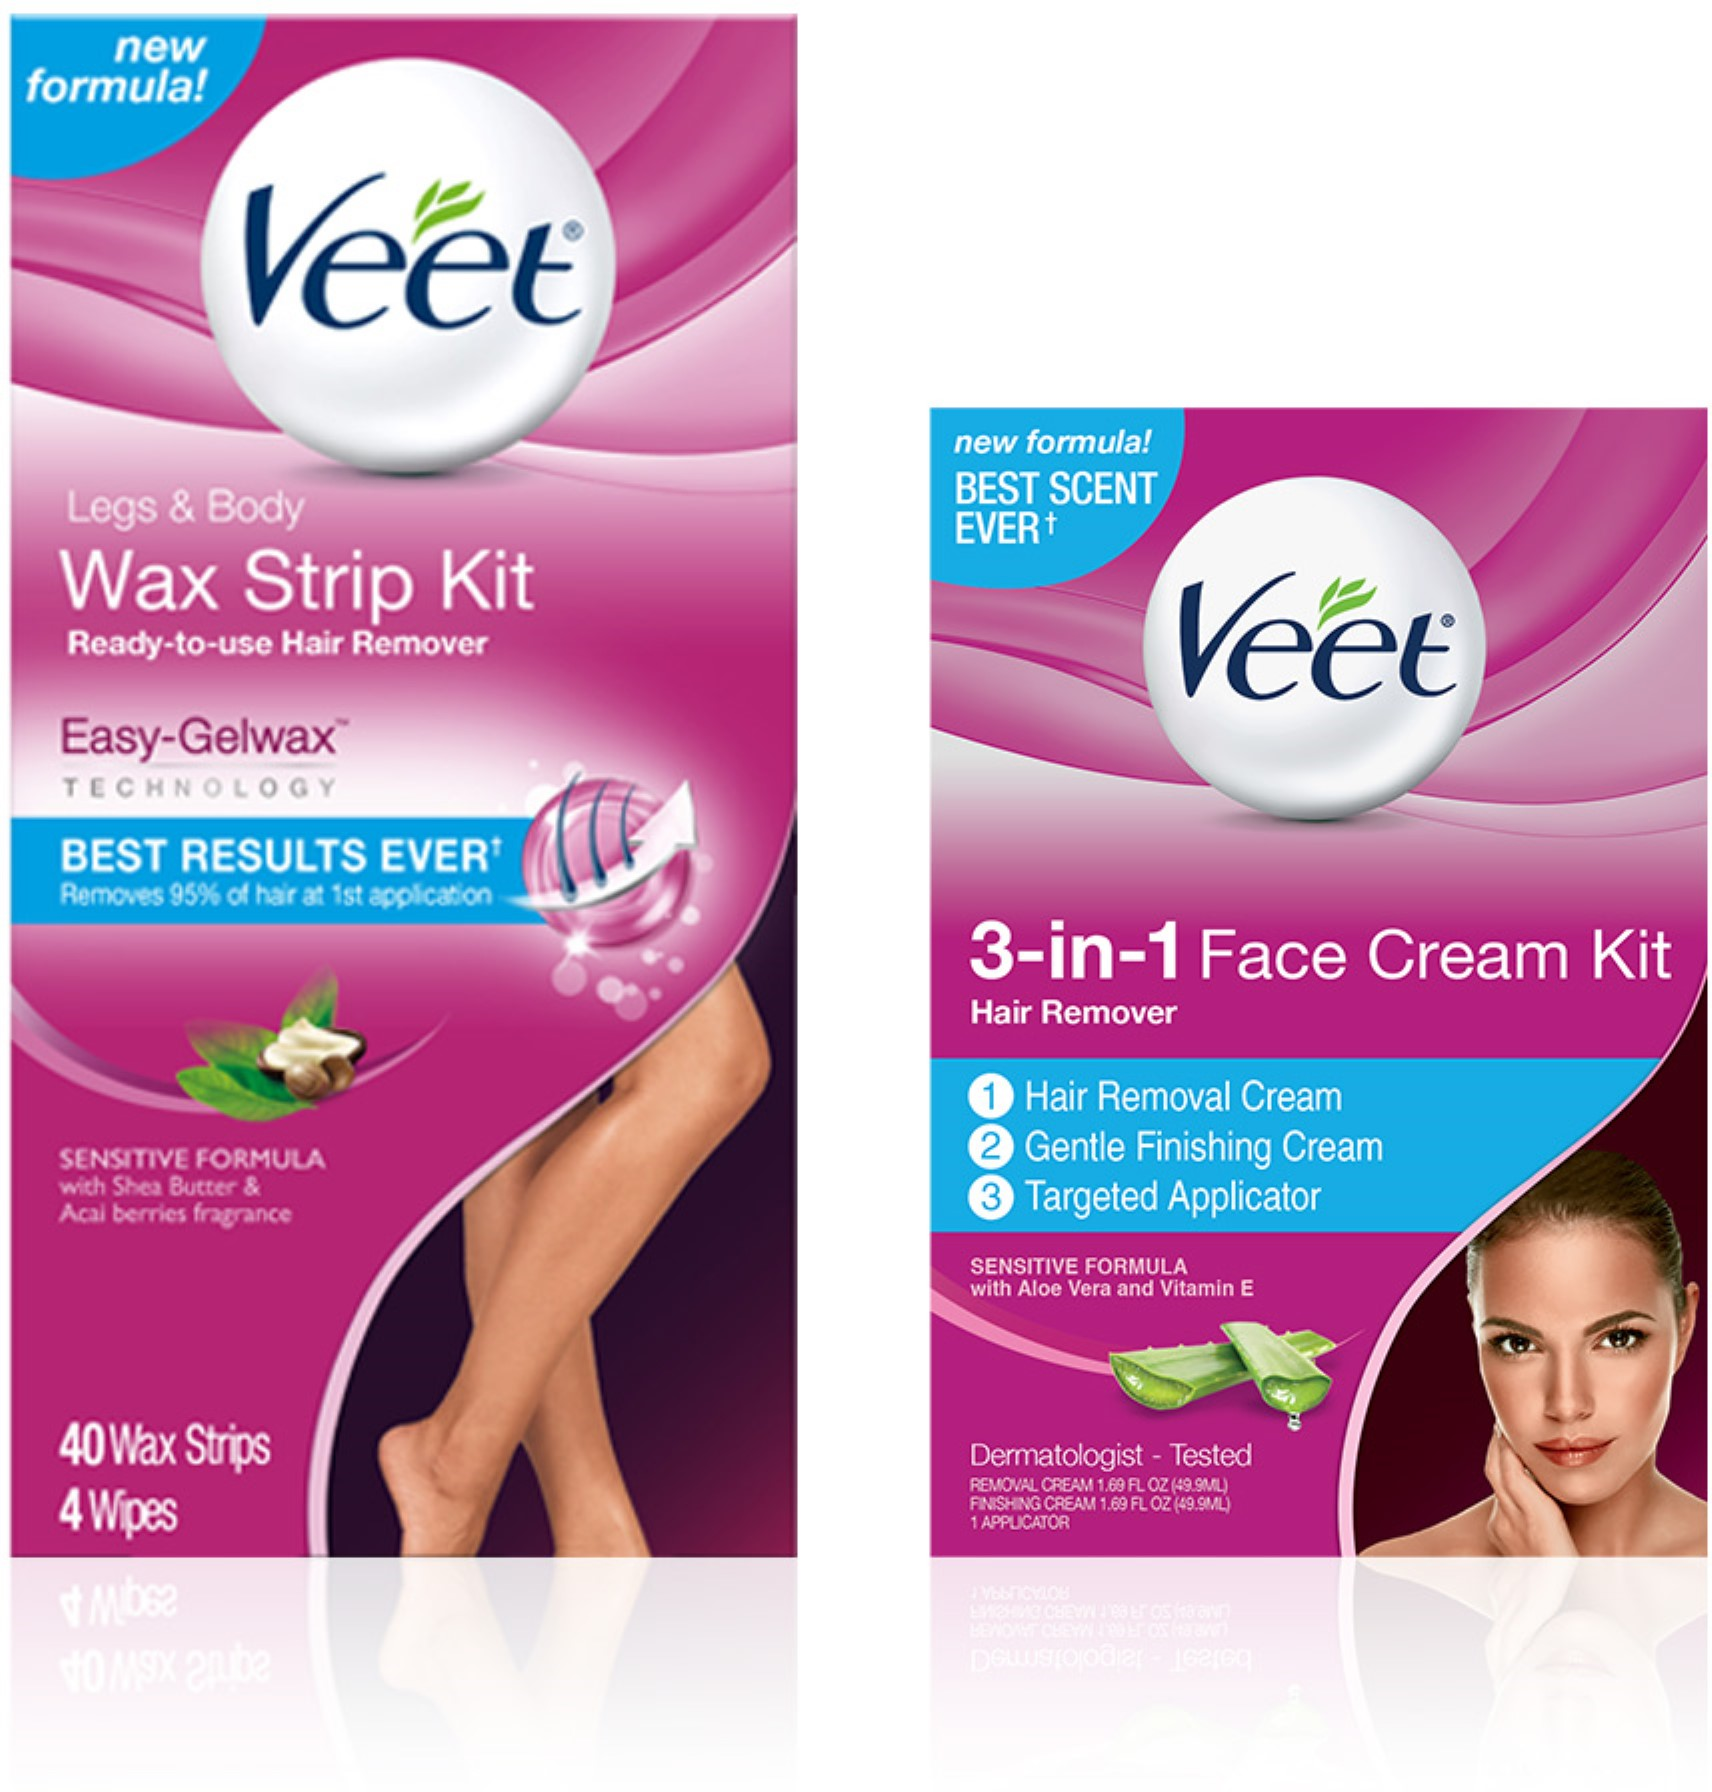 VEET Hair Remover Kit With Wax Strips For Leg & Body (40 cnt) and 3-in-1 Face Cream (2 x 1.69oz), Sensitive Formula 1 ea